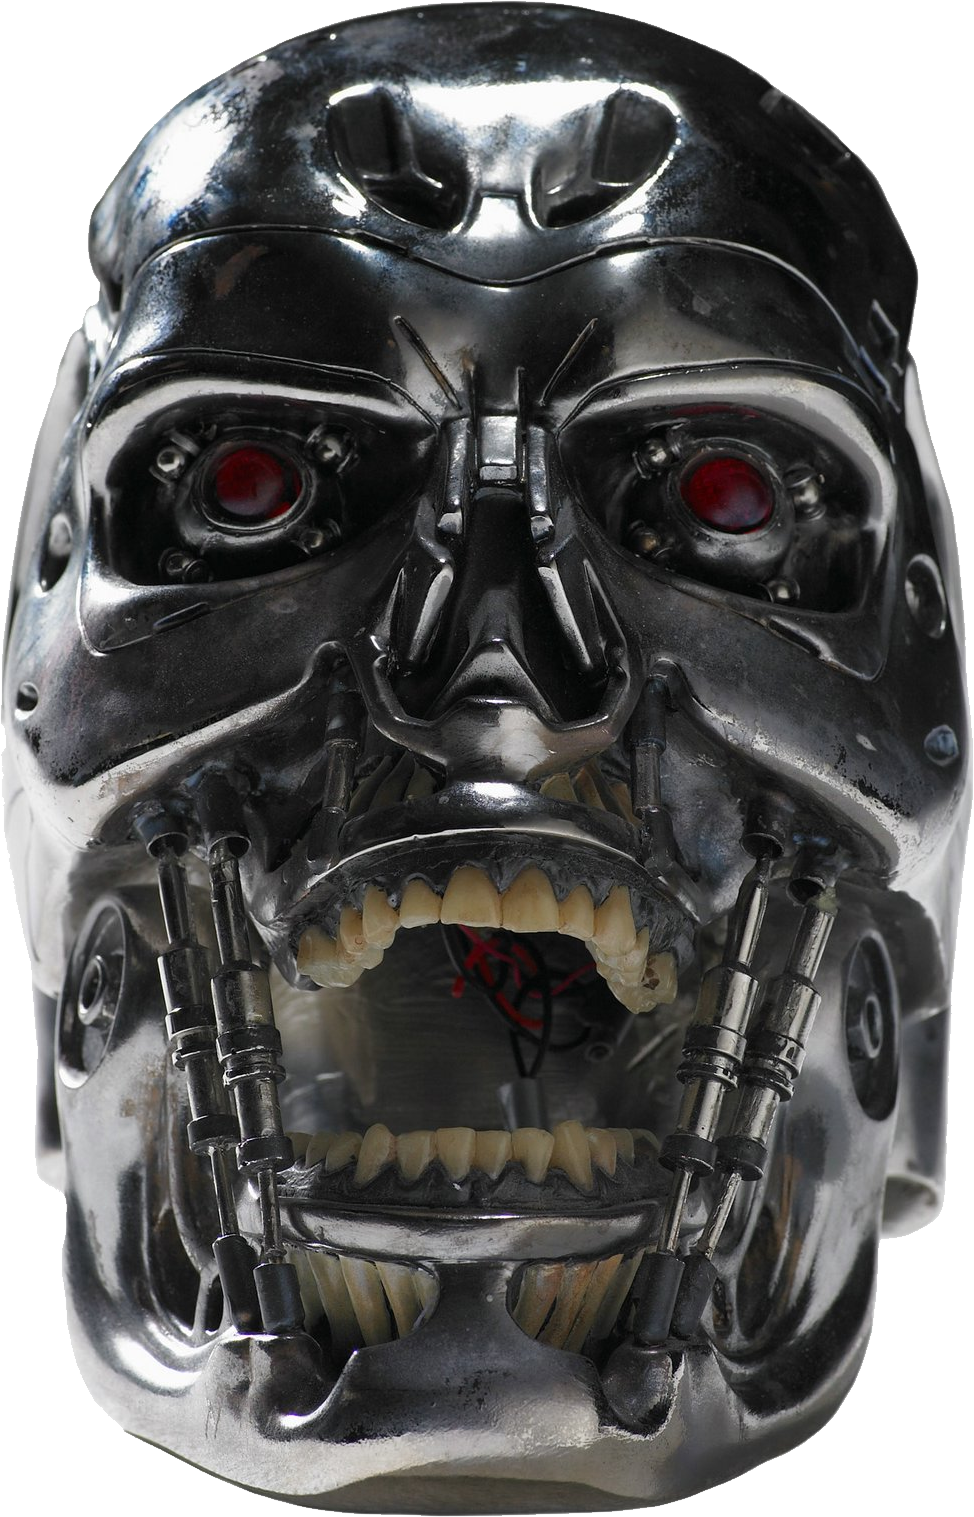 Terminator Skull Png Image Terminator Png Images Png Images For Editing